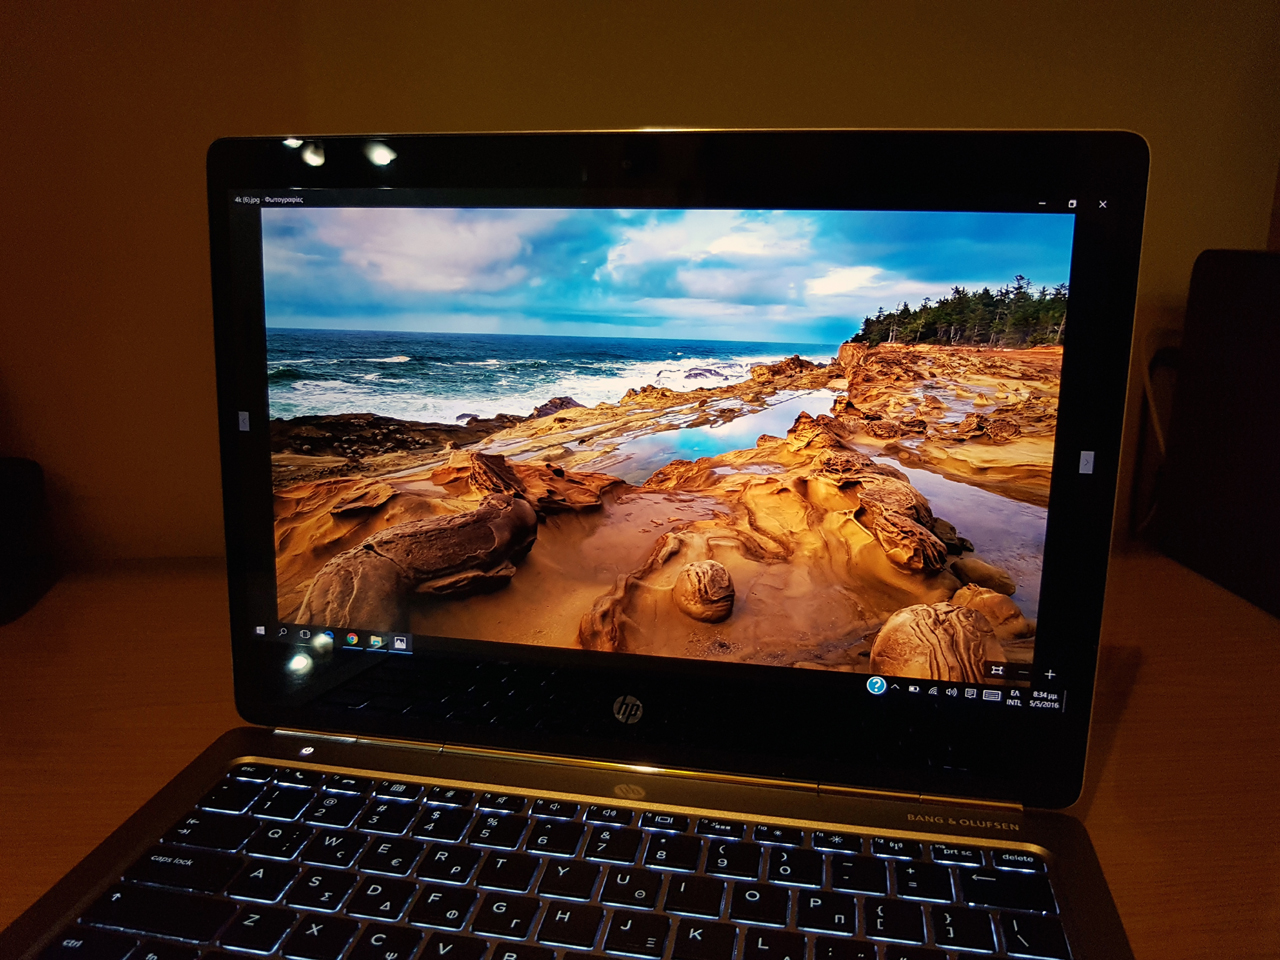 HP EliteBook Folio G1 Review: Το Ultrabook στα καλύτερα του